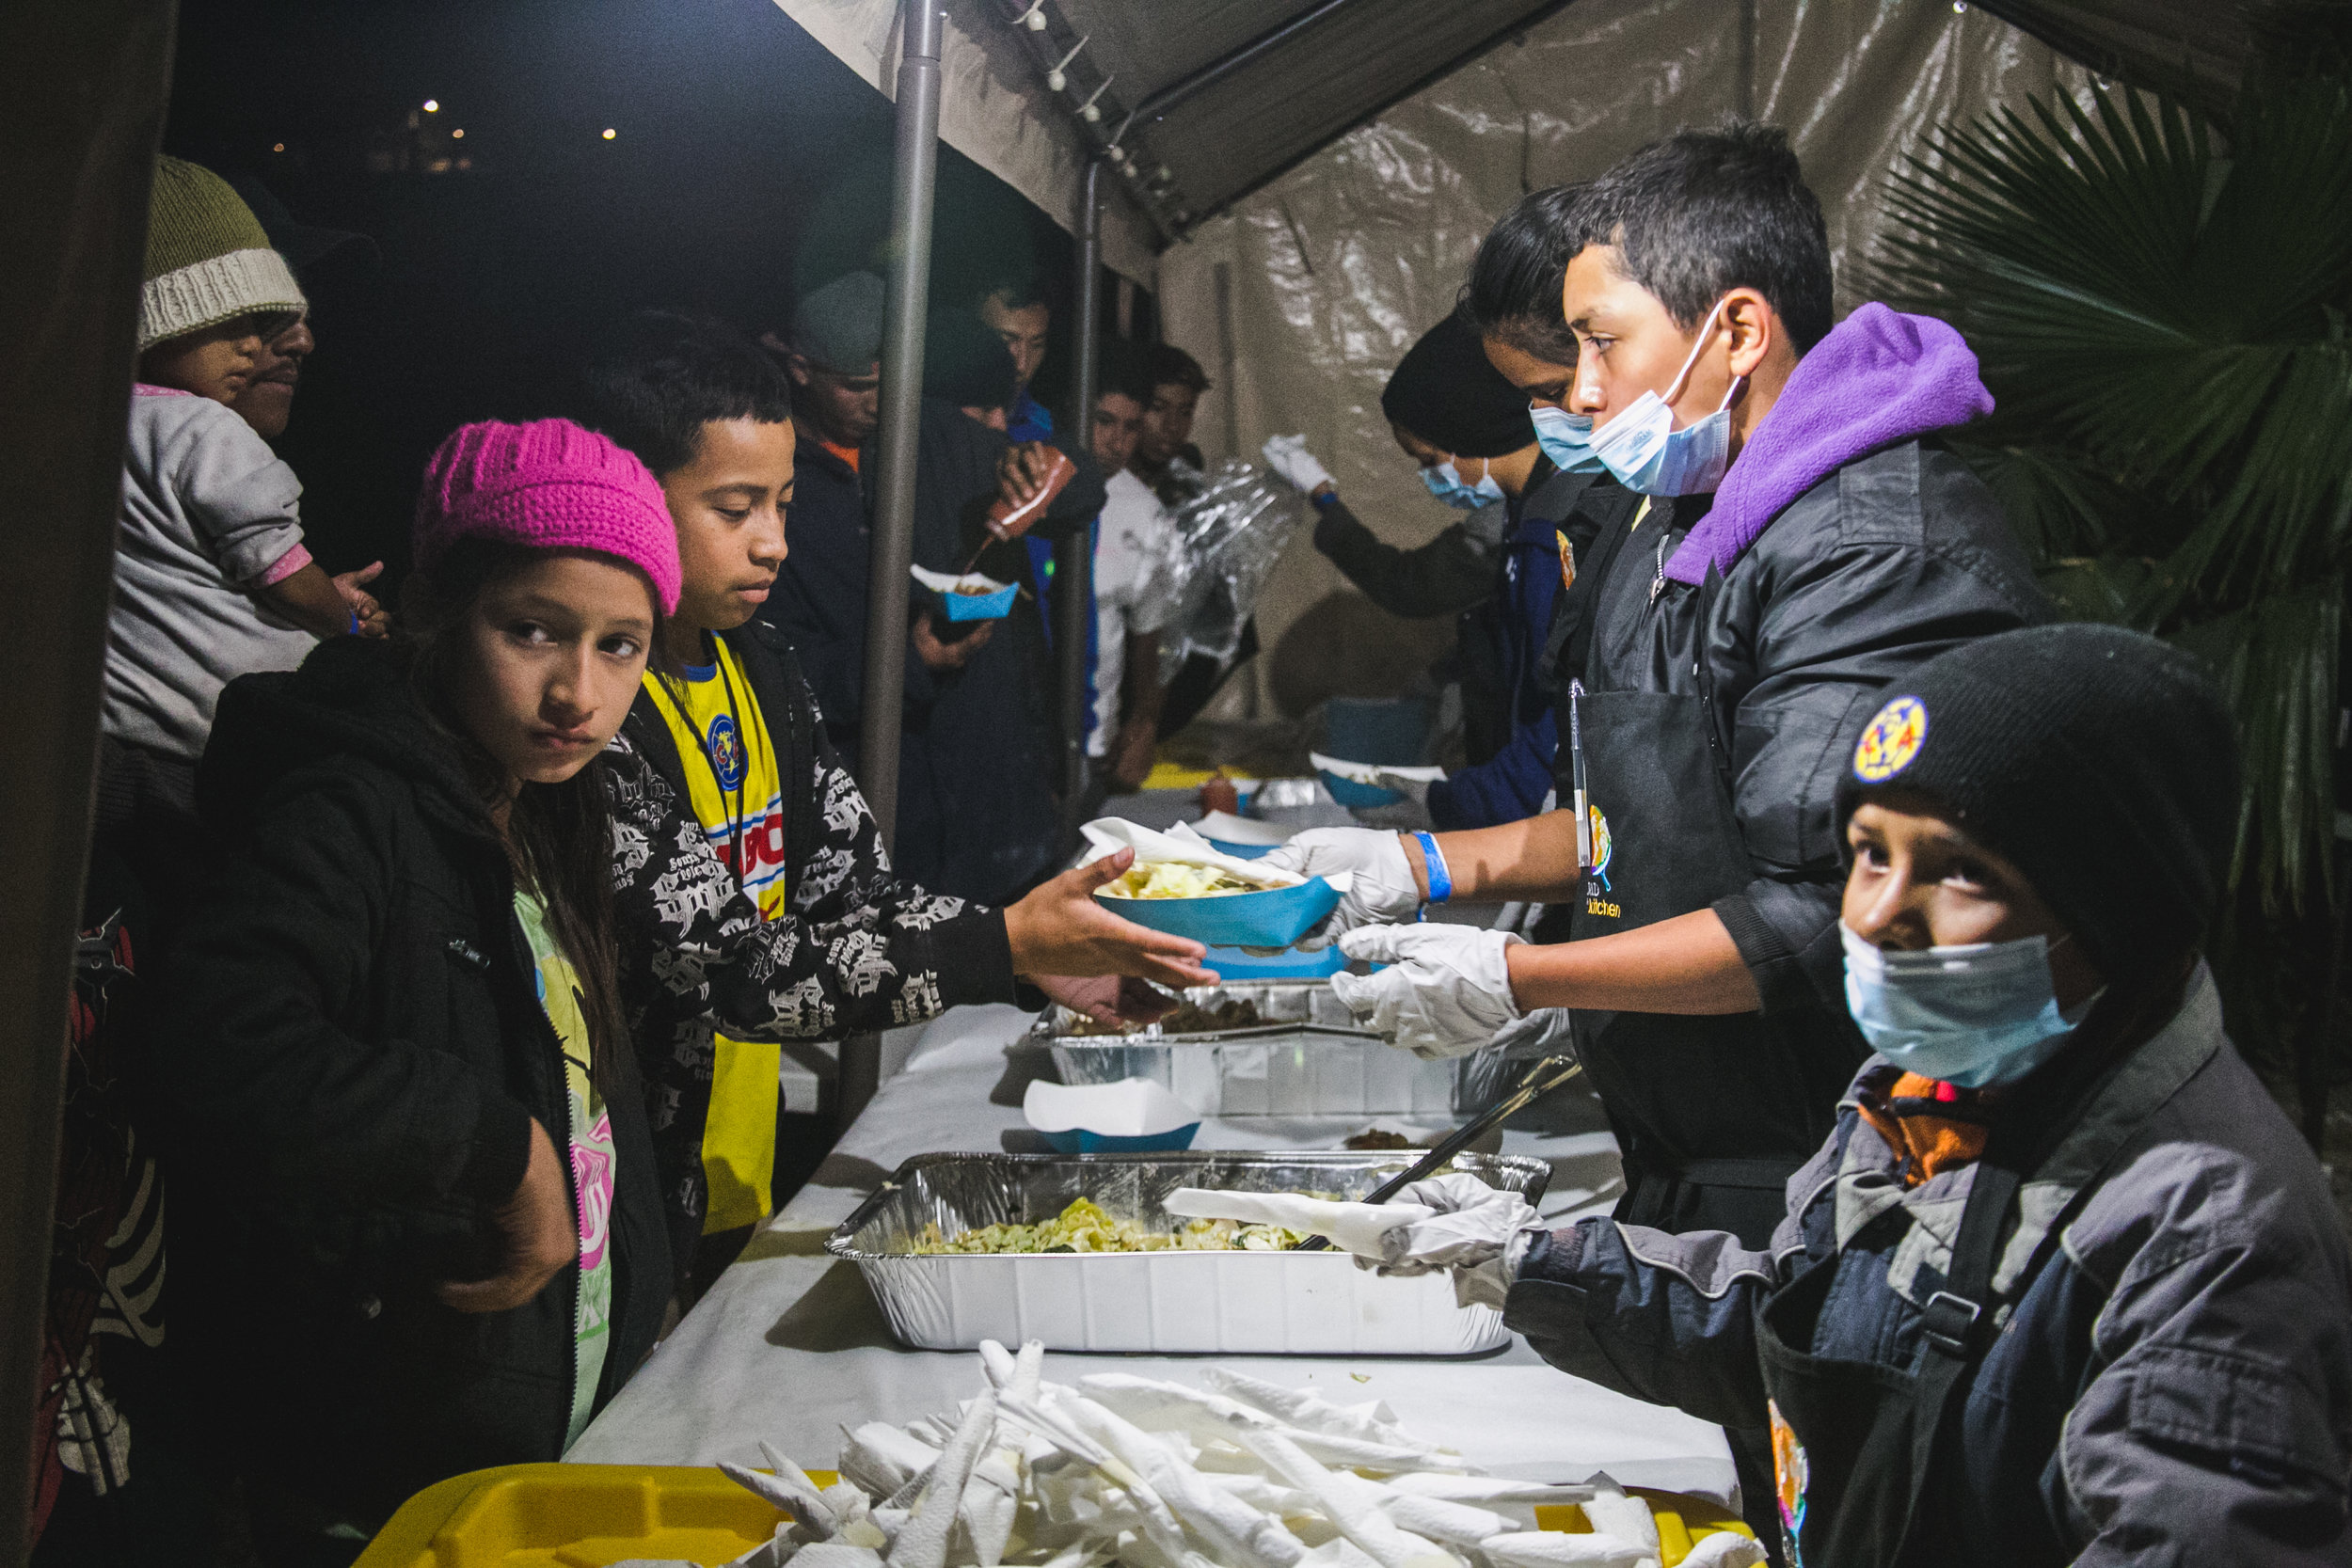 Volunteers serve dinner to over 1,500 refugees. Each day, 5-6 children from the camp would assist World Central Kitchen with serving lunch. The goal of the program surrounds creating a sustainable refugee-operated kitchen in Tijuana to serve for months (or even years) to come. The recent influx in caravan activity has drawn mass media attention - but contrary to popular belief - refugees from Central America have been arriving in Tijuana for over a decade.